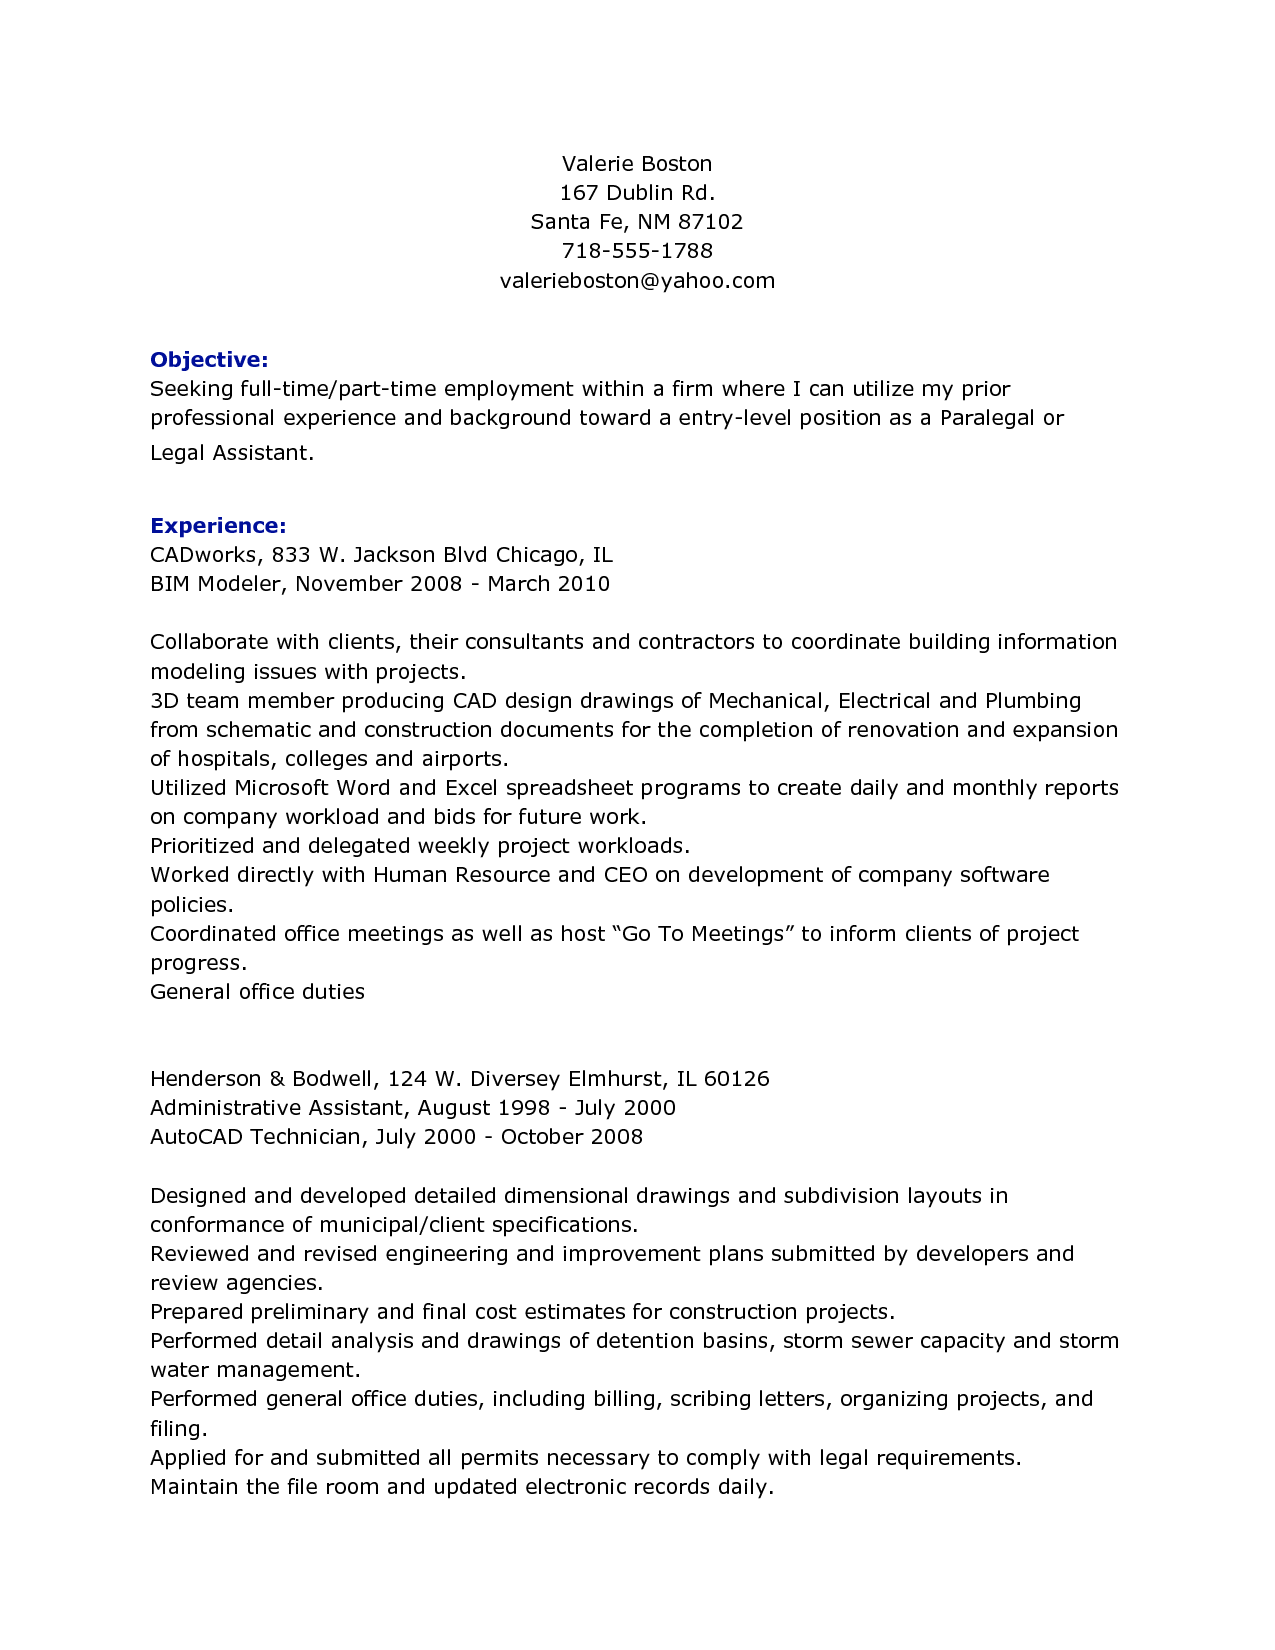 paralegal resume template sample legal resume attorney resume format skylogic law objective samples school legal assistant - Paralegal Resume Samples